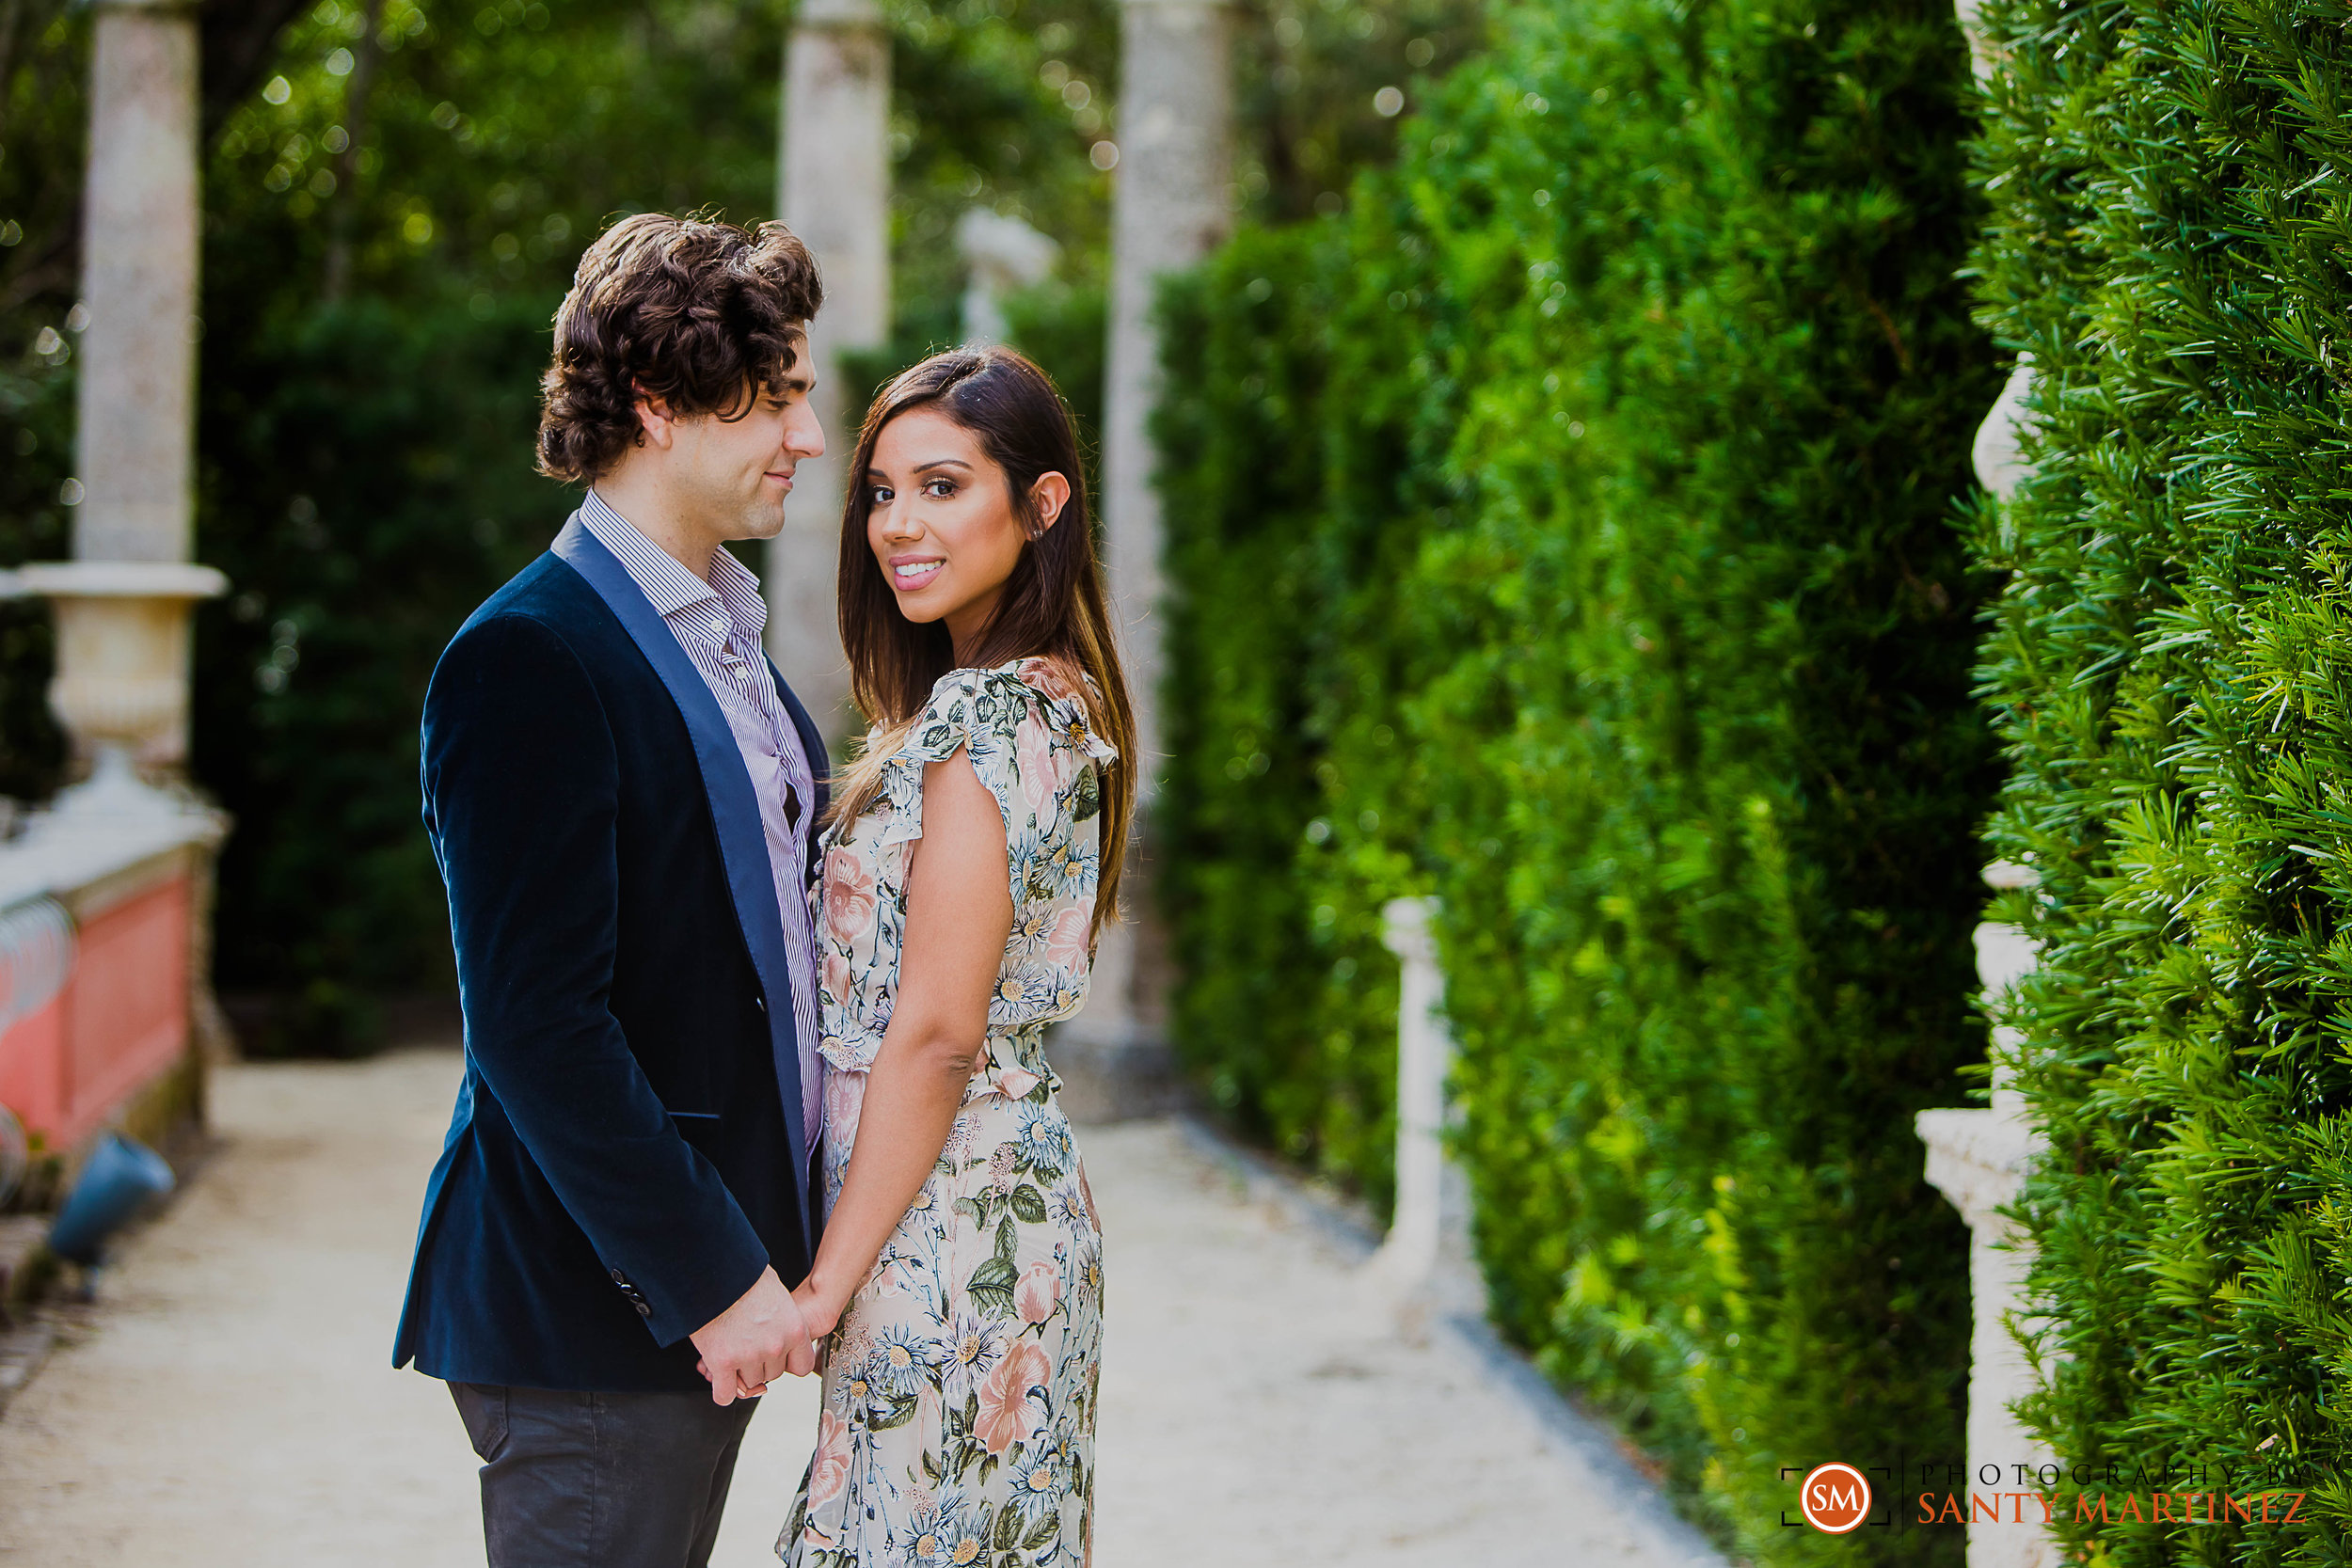 Vizcaya Engagement Session - Santy Martinez Photography.jpg